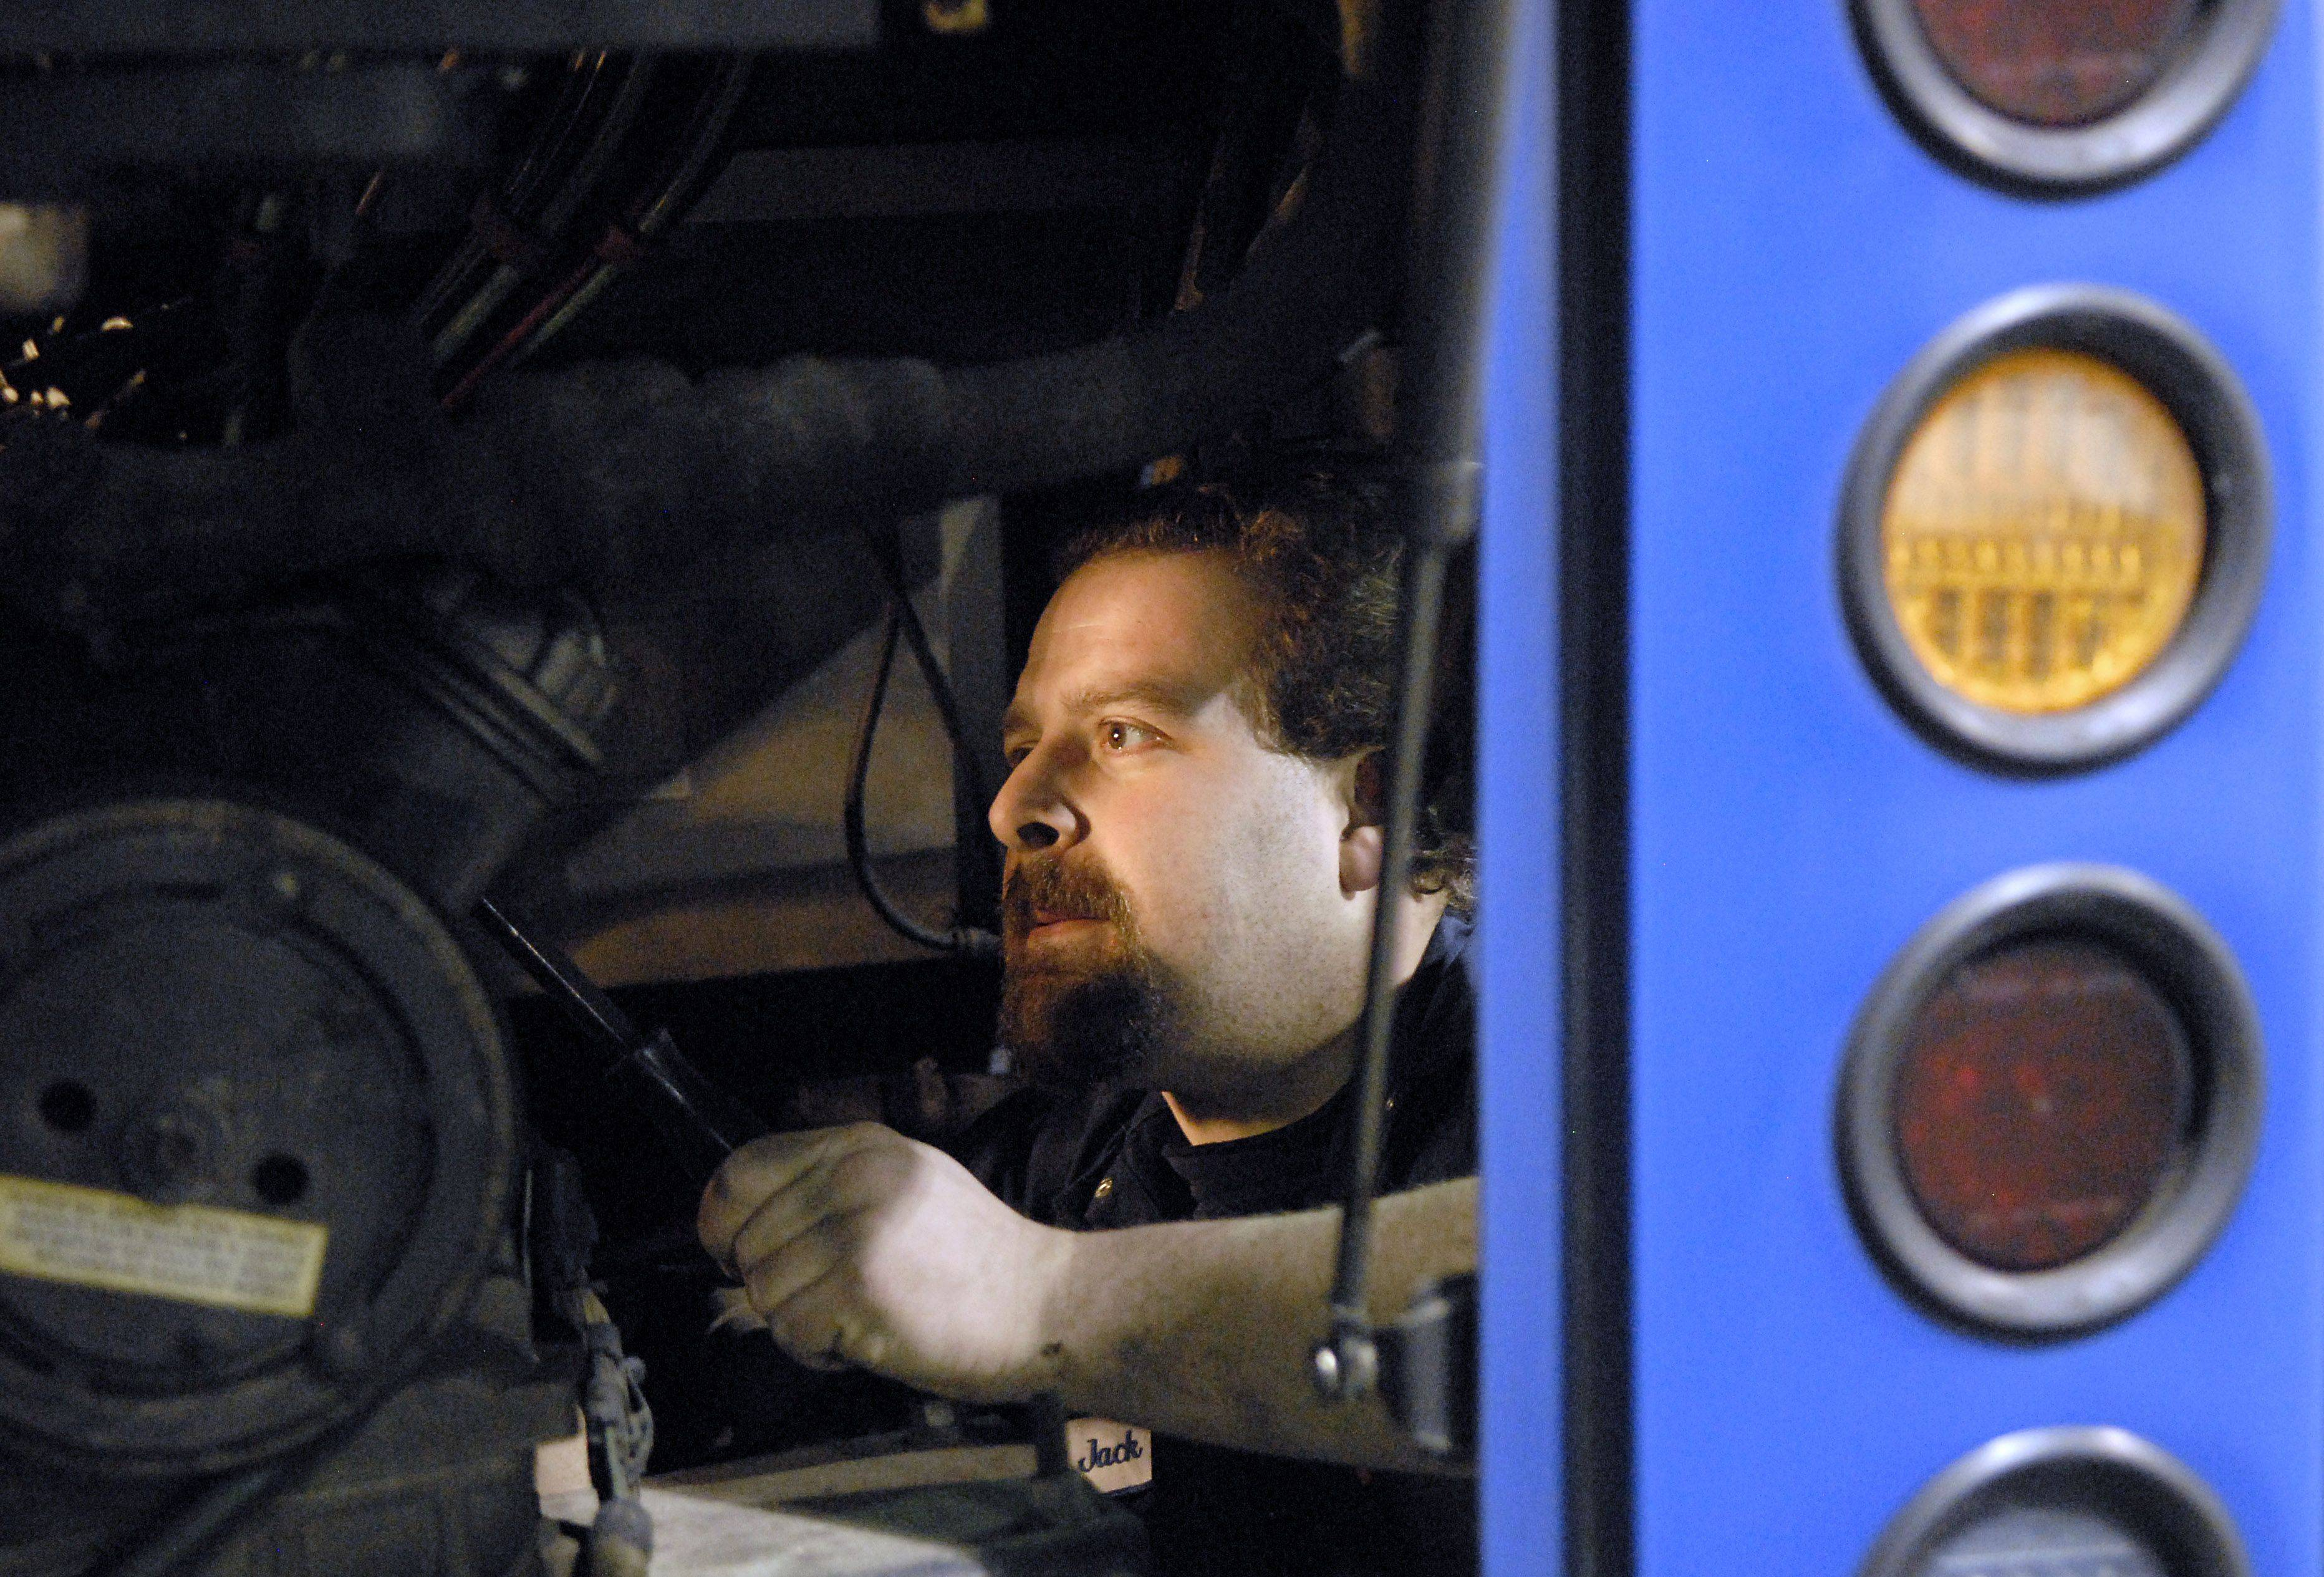 Mechanic Jack Rojewski helps out a fellow mechanic working on the engine of a bus. Engines have access panels from the back as well as the side. Rojewksi has been a mechanic for 16 years at Pace.